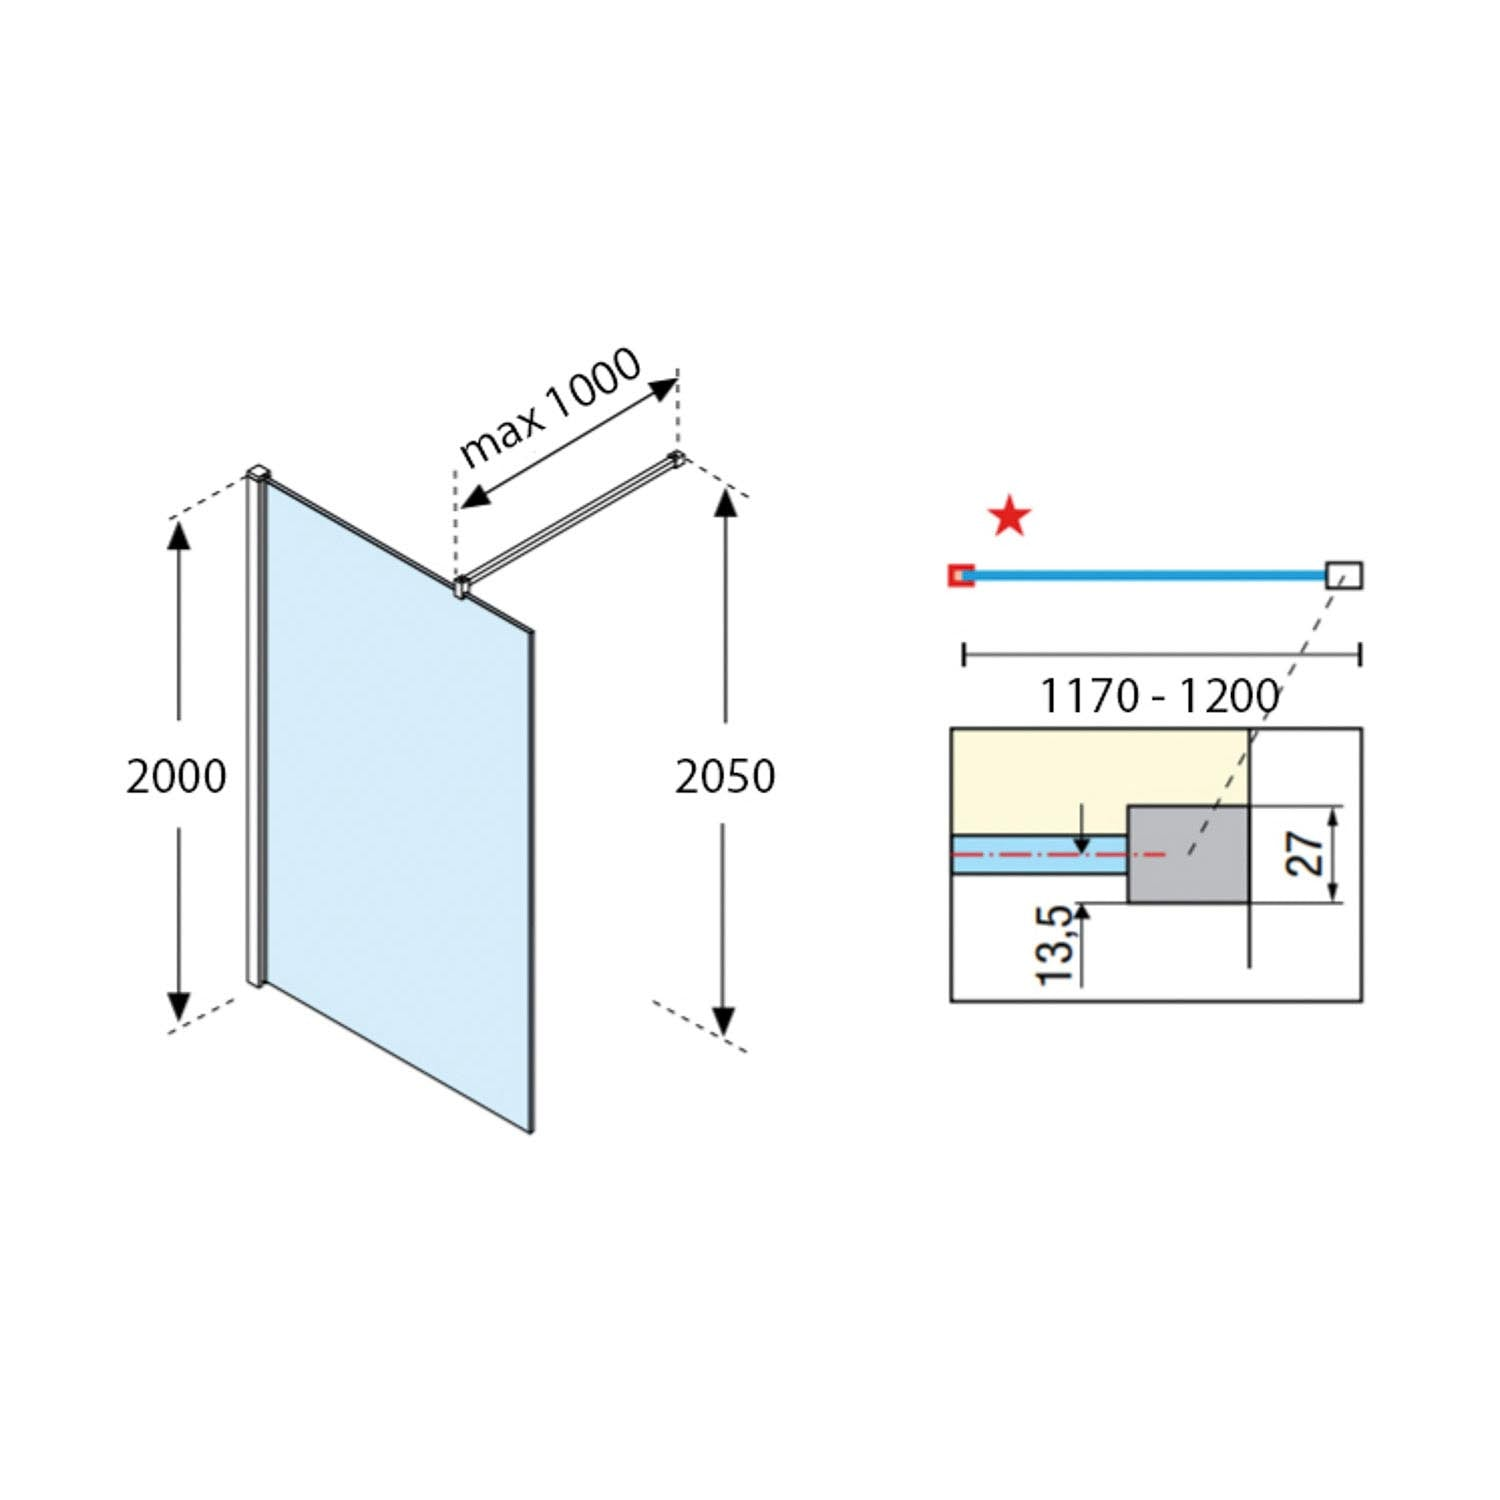 1170-1200mm Ergo Wet Room Screen Satin Band Glass with a matt black finish dimensional drawing